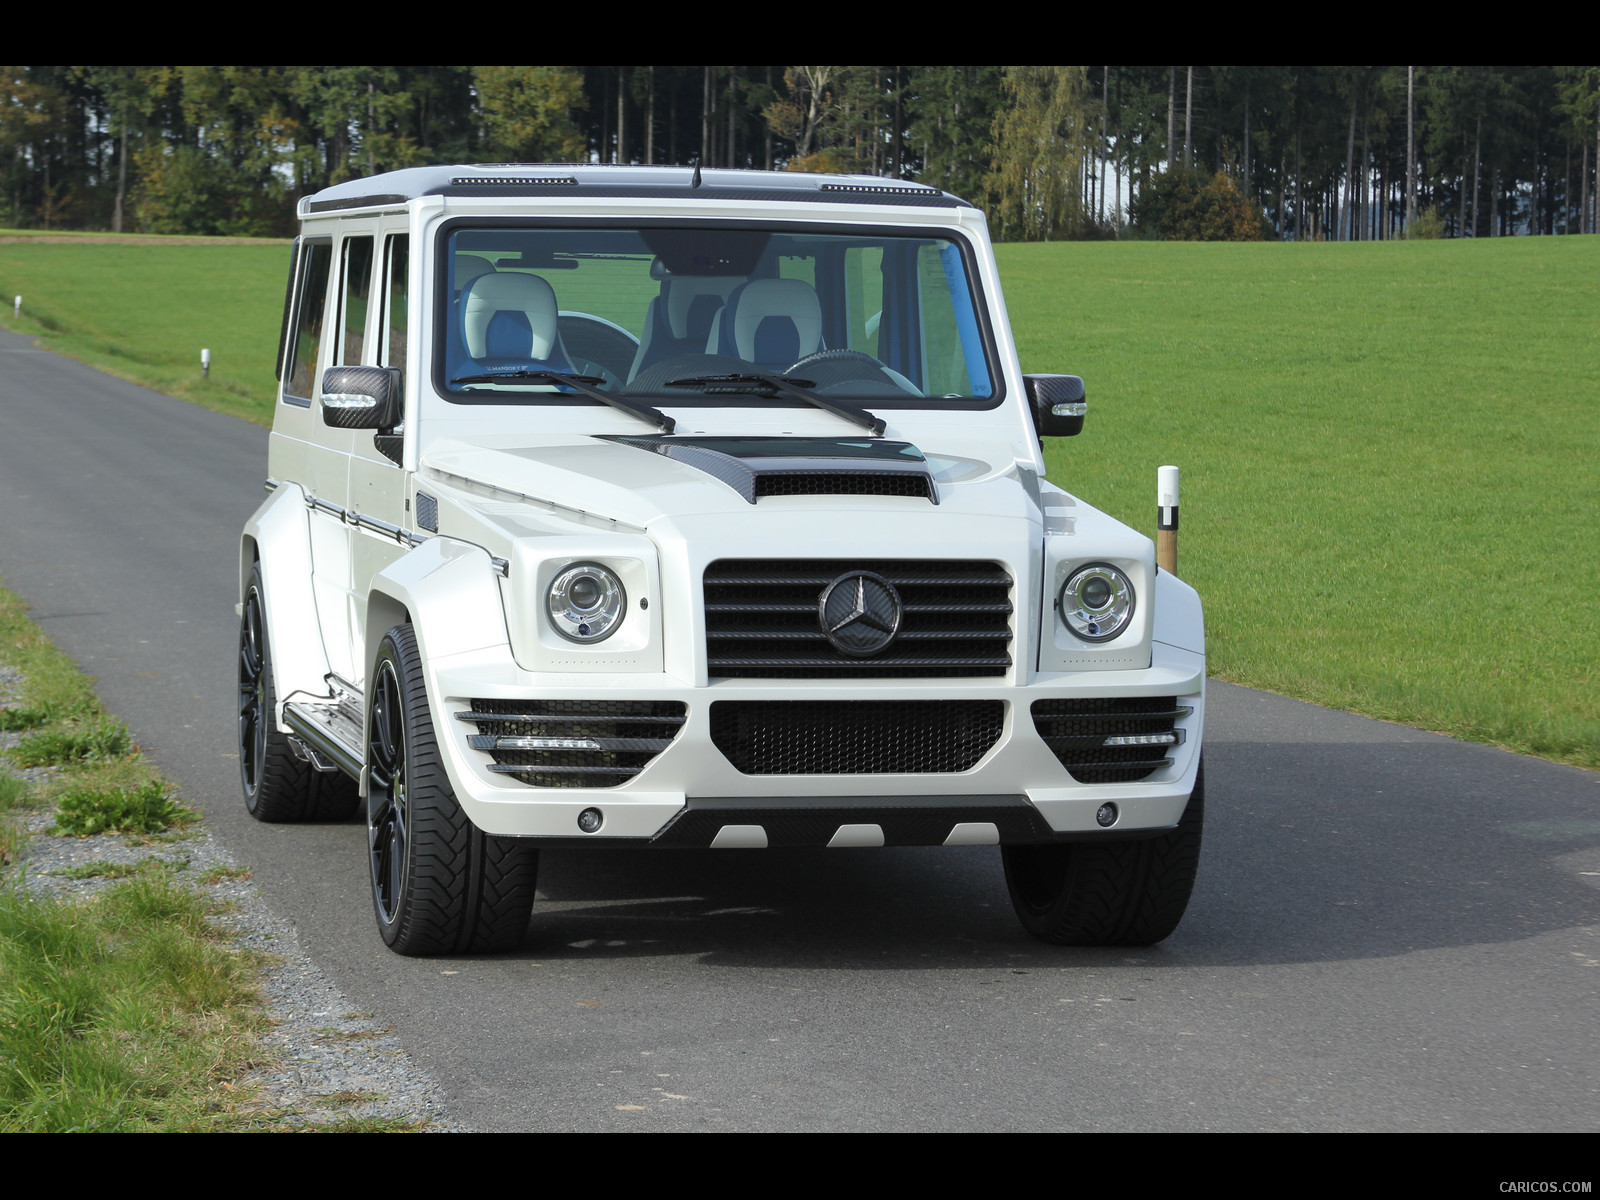 mansory mercedes g class picture 132368 mansory photo. Black Bedroom Furniture Sets. Home Design Ideas